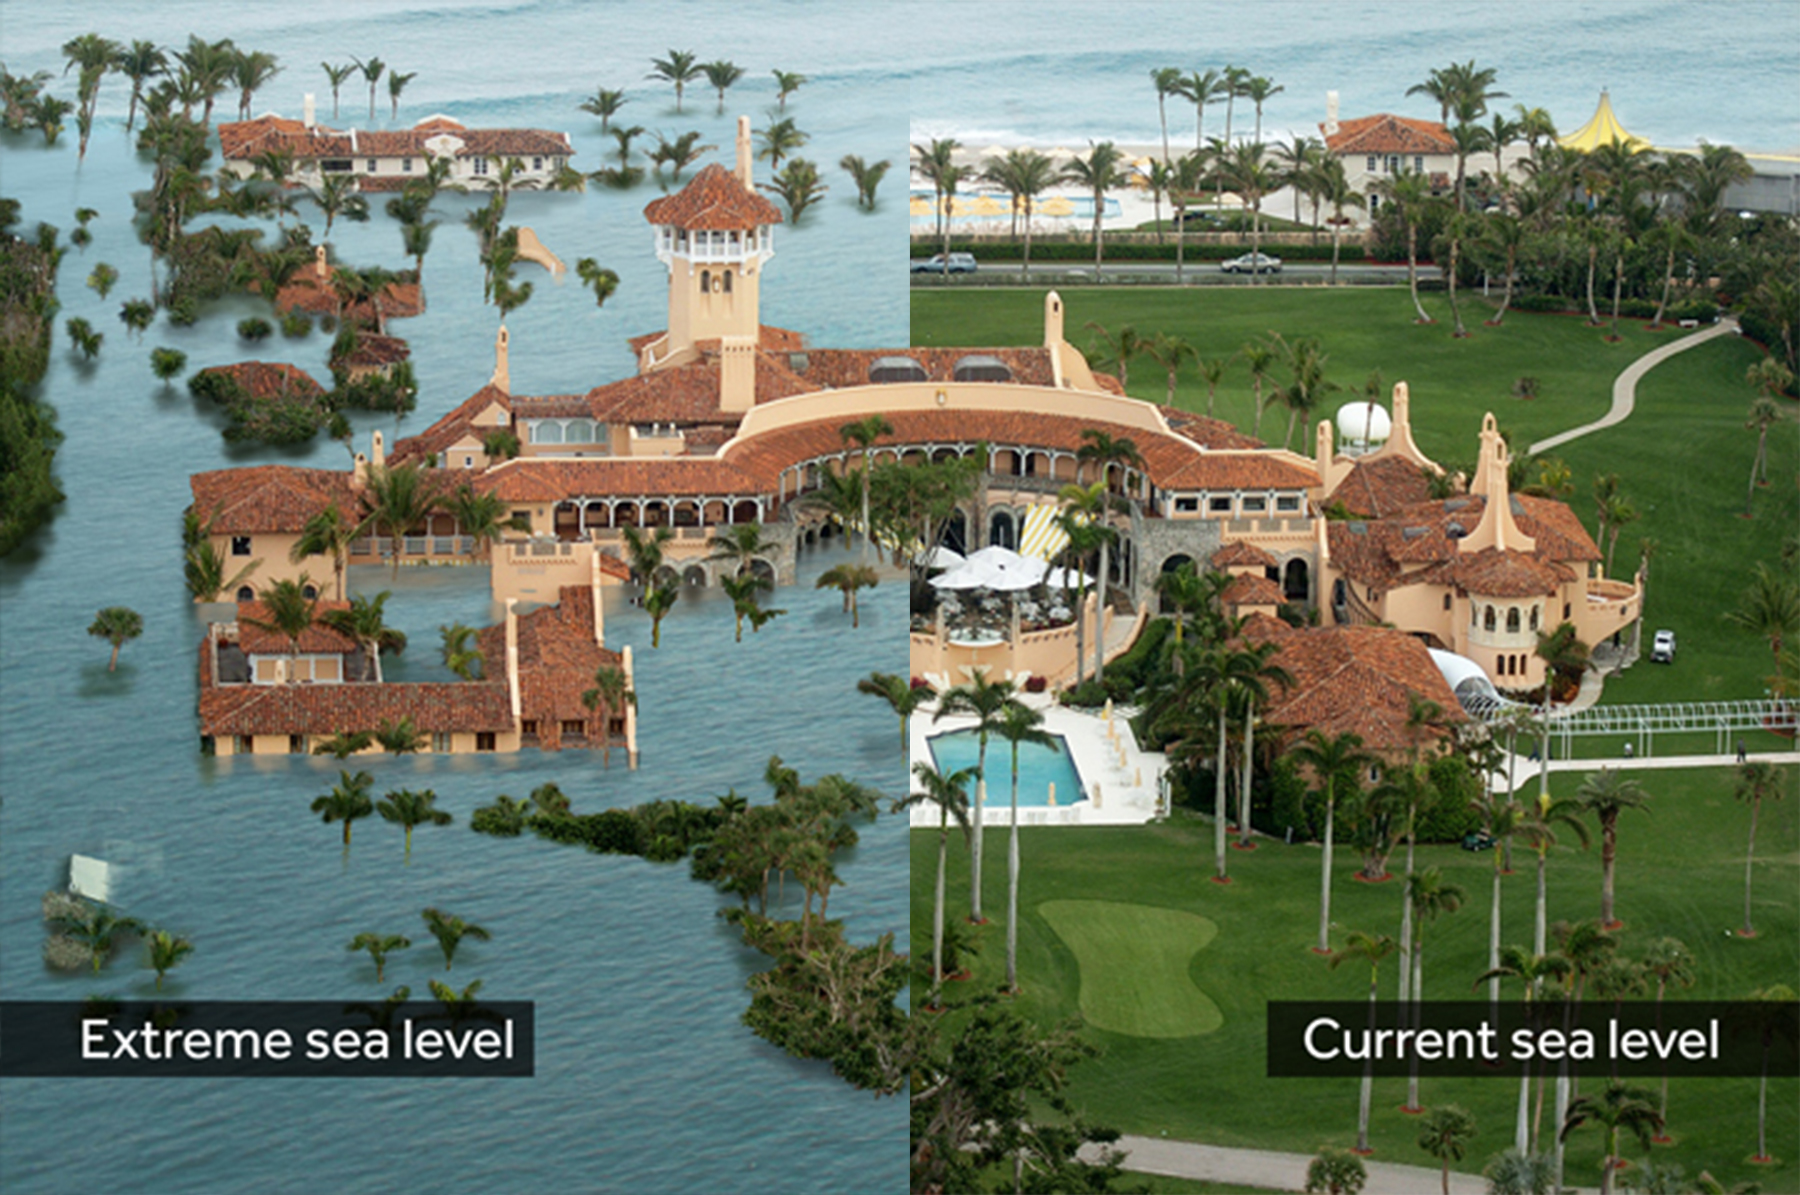 Trump axed a rule that would help protect coastal properties like Mar-a-Lago from flooding